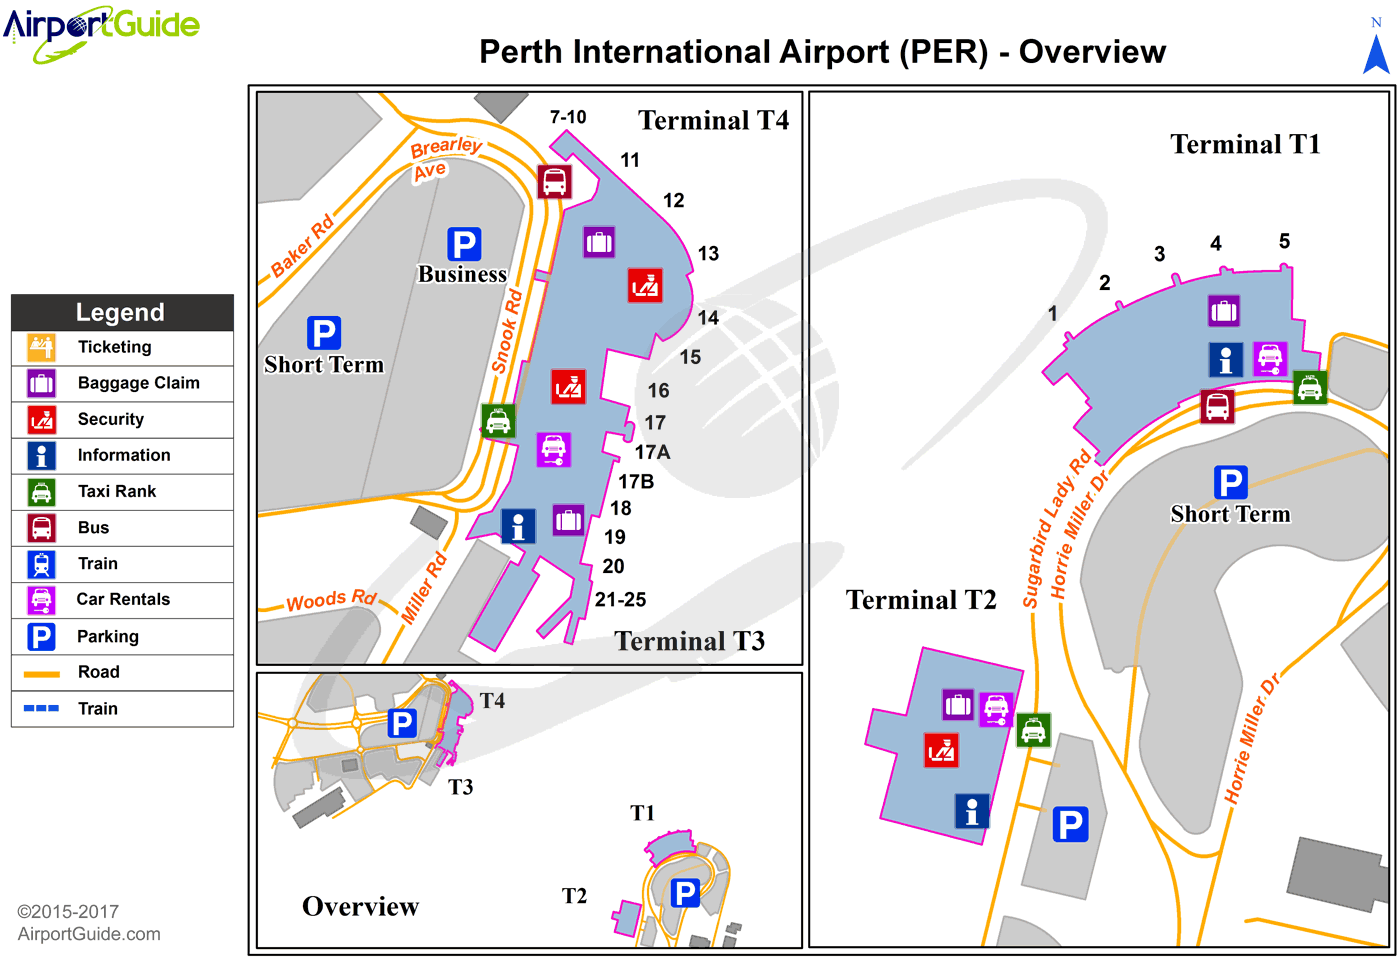 Map Perth International Airport Perth   Perth International (PER) Airport Terminal Map   Overview